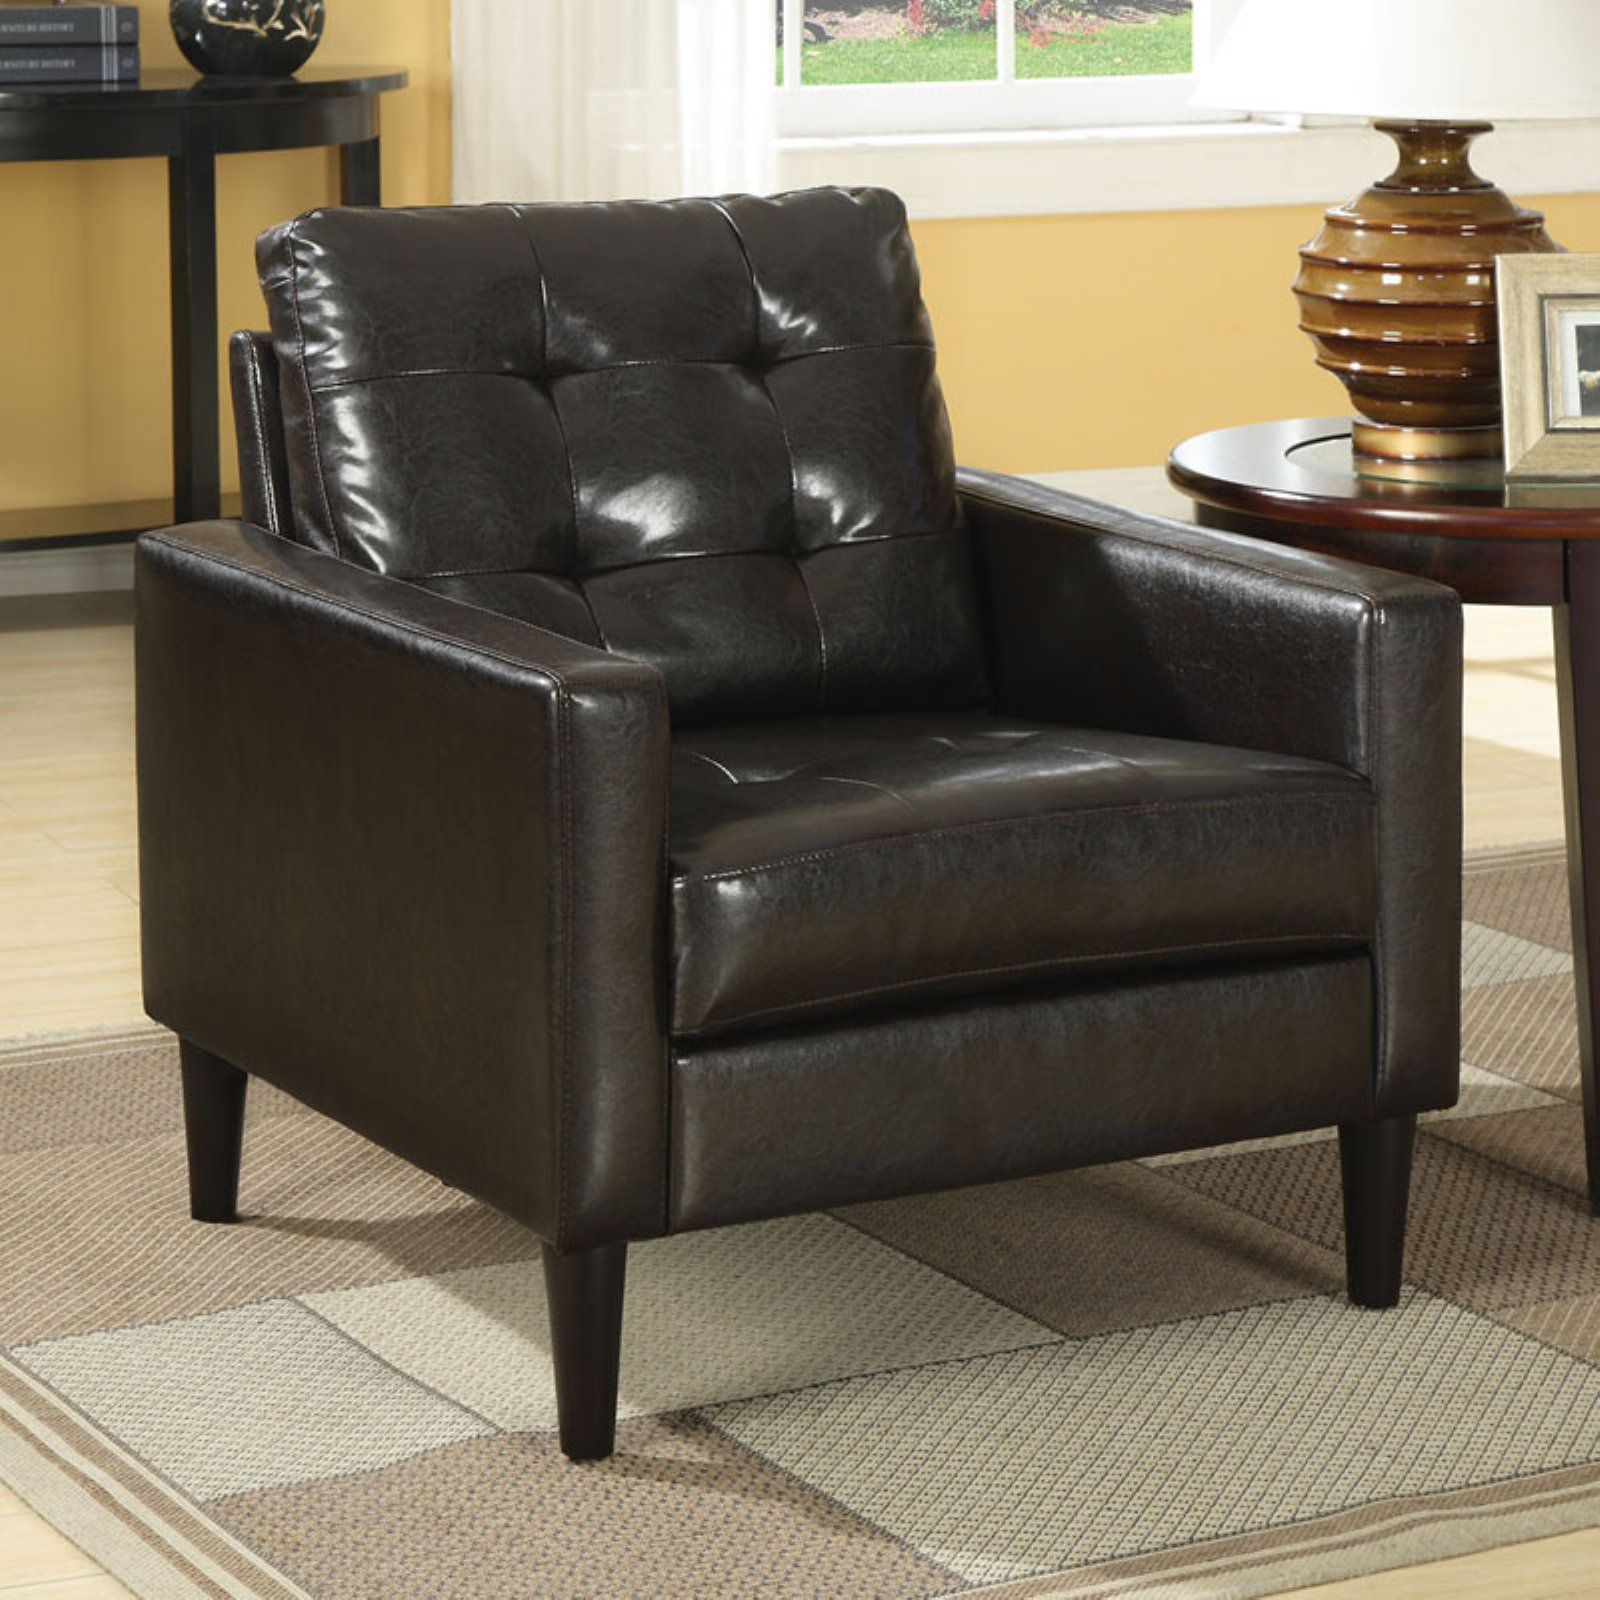 Acme Balin Accent Chair, Faux Leather, Multiple Colors by Acme Furniture